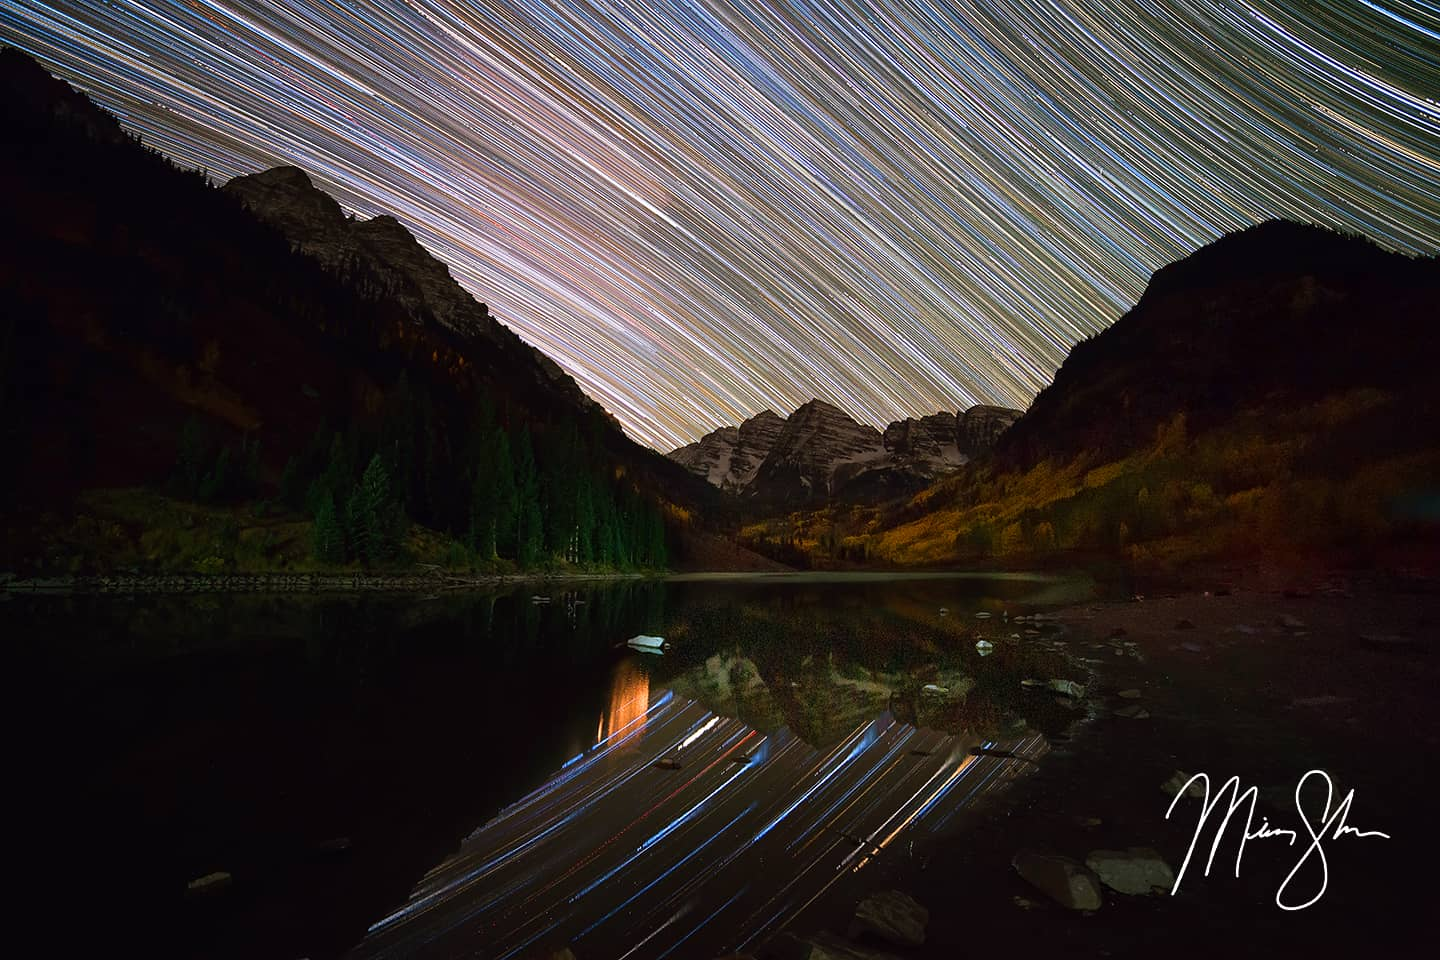 Open edition fine art print of Maroon Bells Star Trails from Mickey Shannon Photography. Location: Maroon Bells, Aspen, Colorado